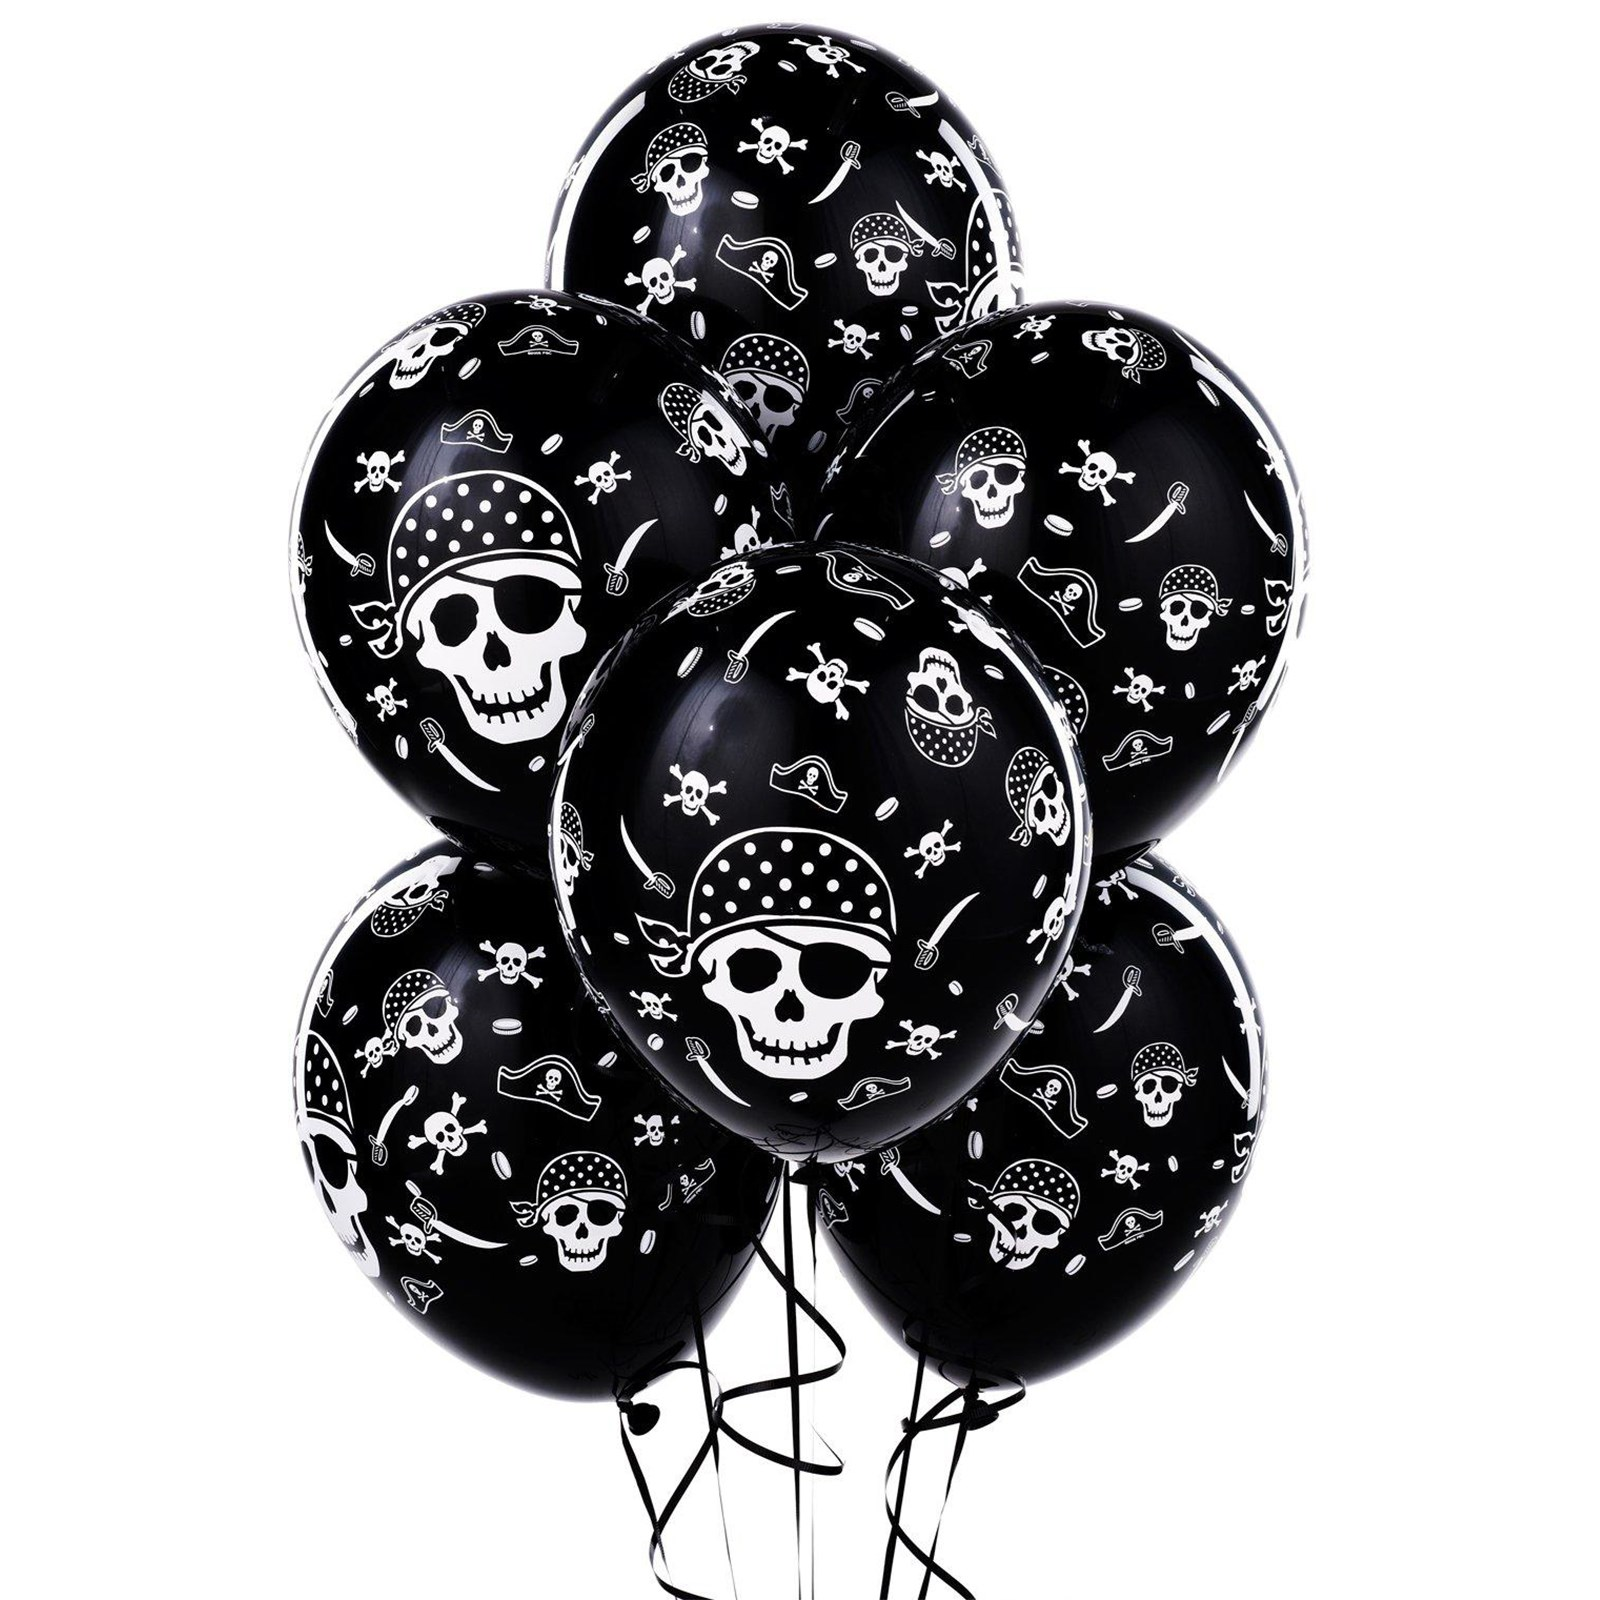 Pirate Skull and Crossbones Latex Balloons ...